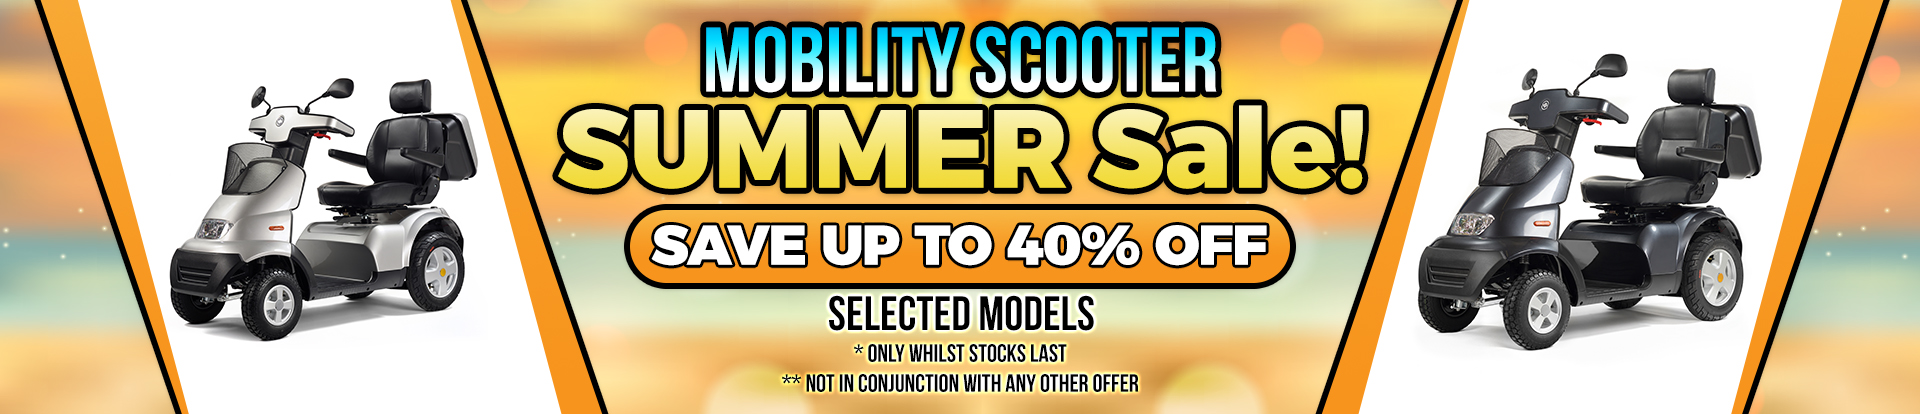 Lifestyle Mobility Scooter Summer Sale